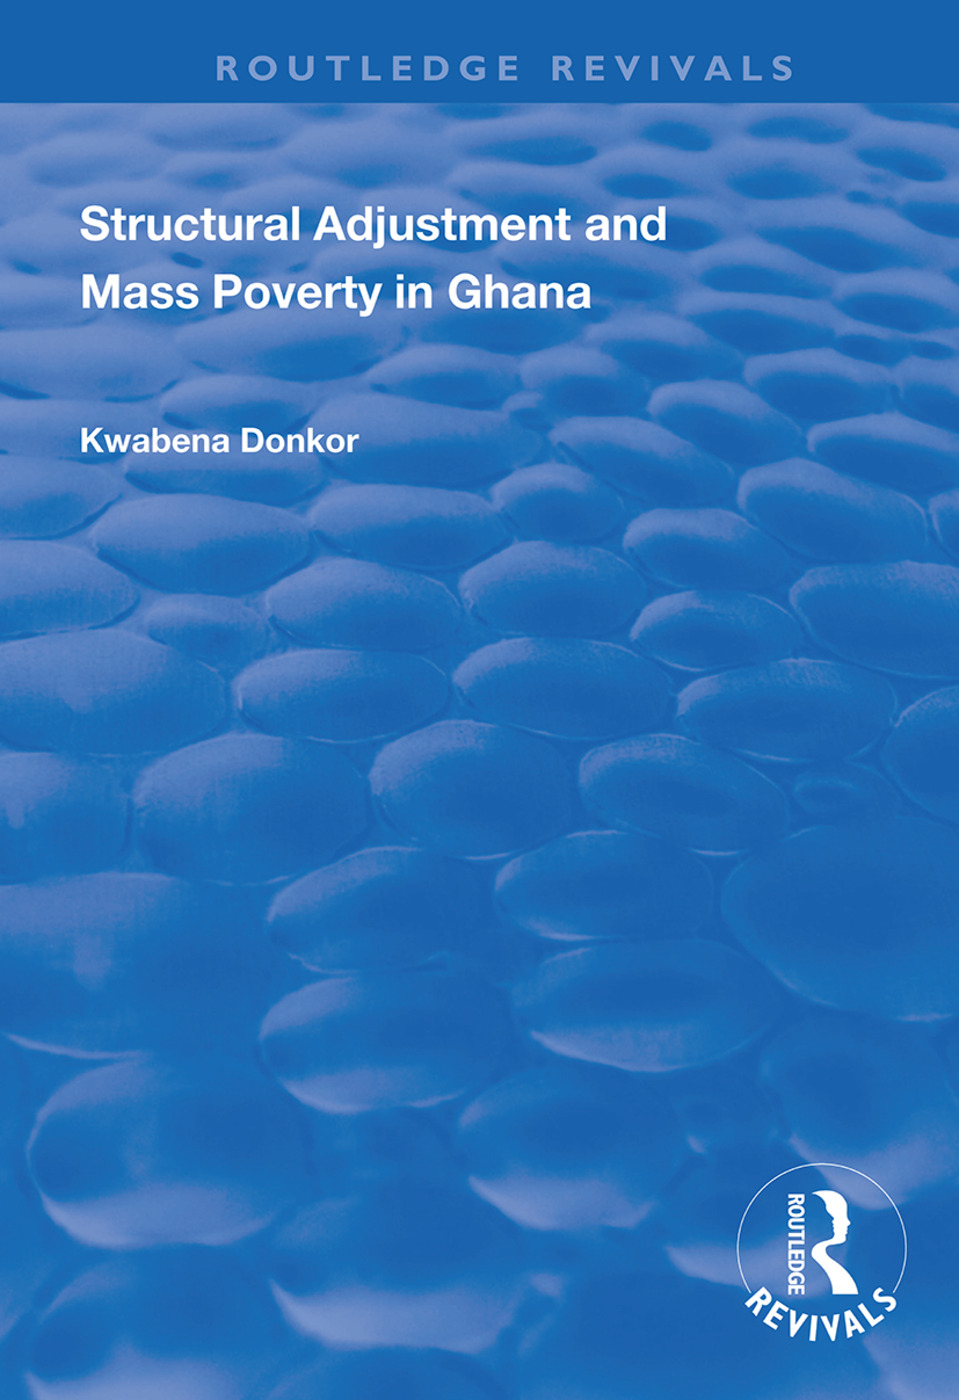 Structural Adjustment and Mass Poverty in Ghana